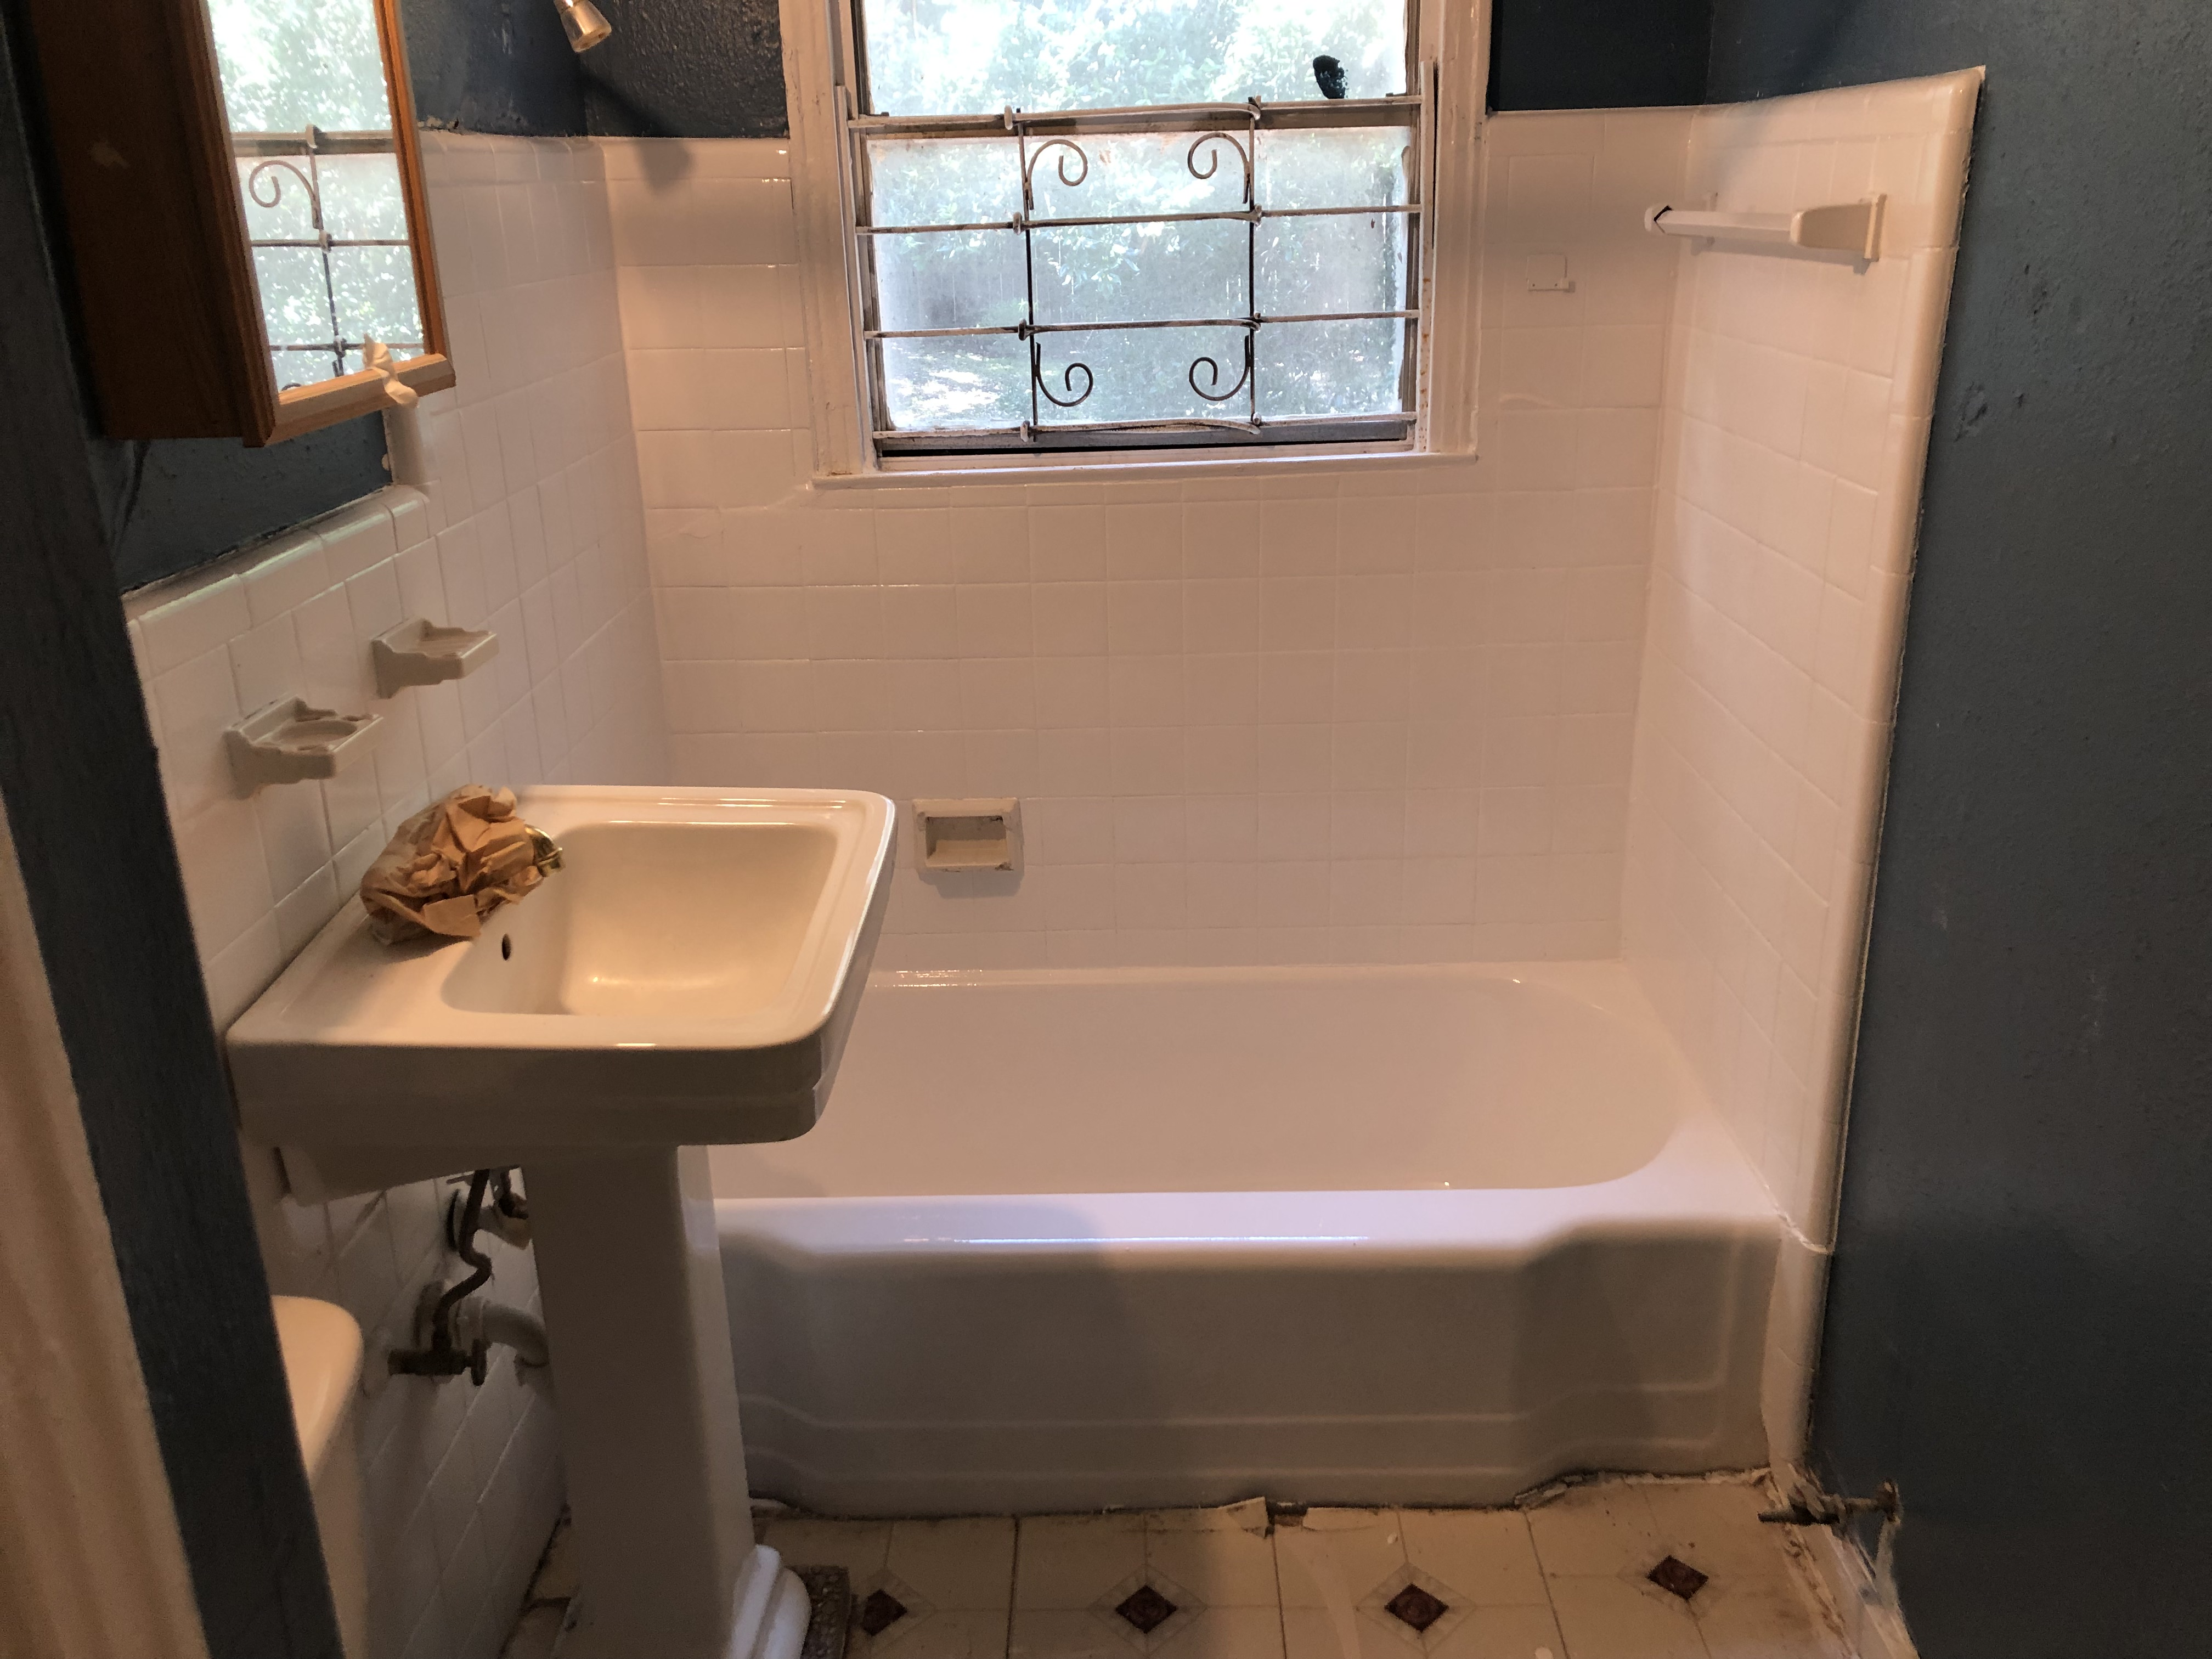 Refinish Tub and Tile